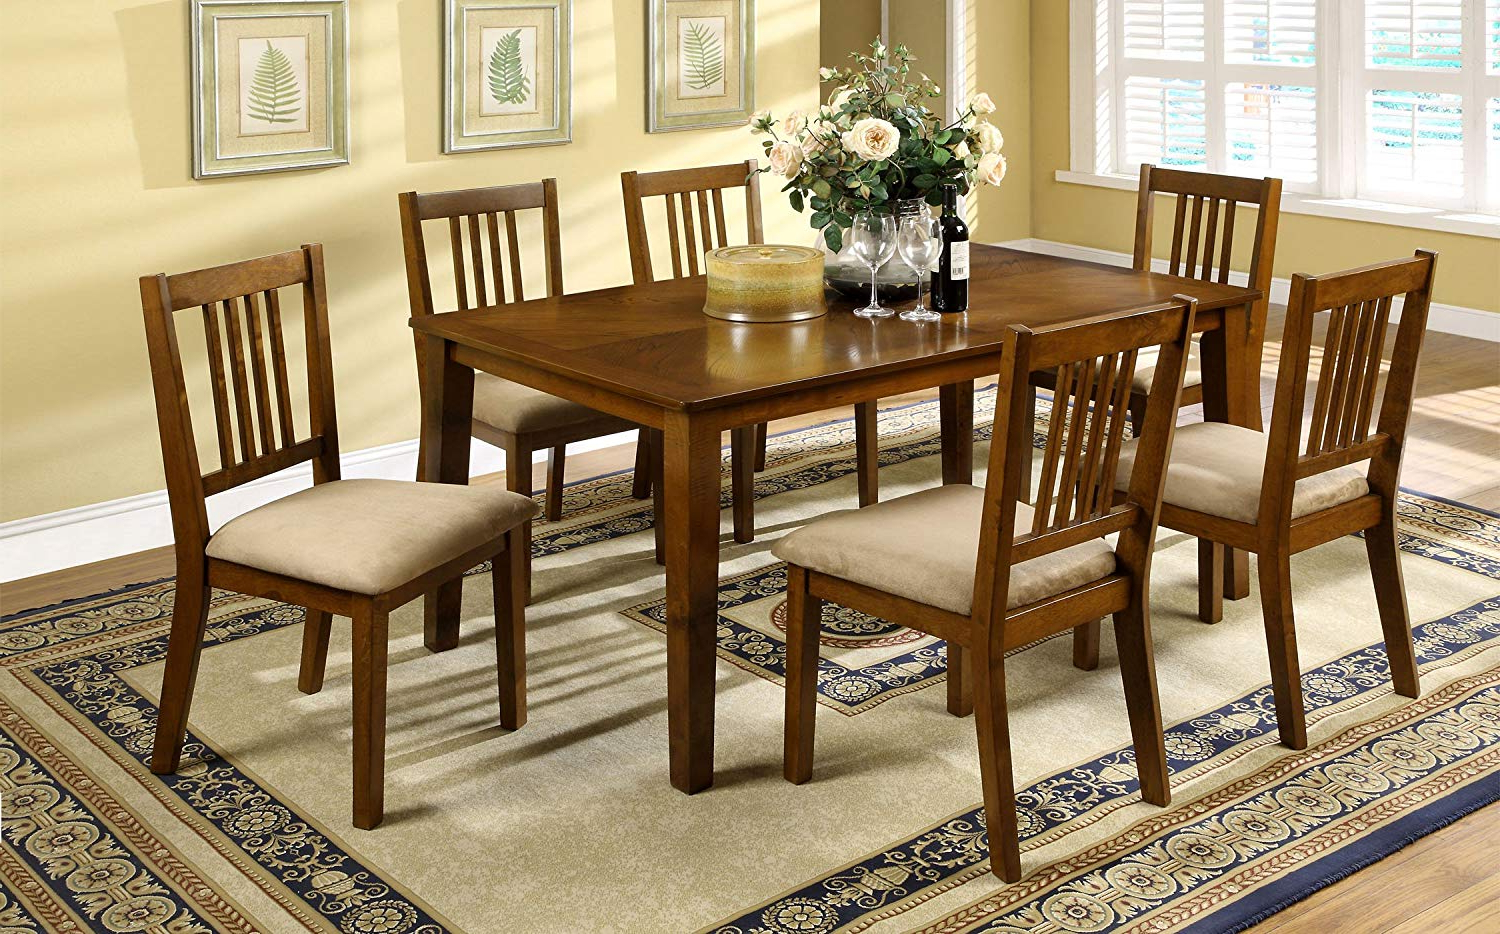 2019 Calla 5 Piece Dining Sets In Amazon – Furniture Of America Erin 7 Piece Dining Table Set (View 1 of 25)